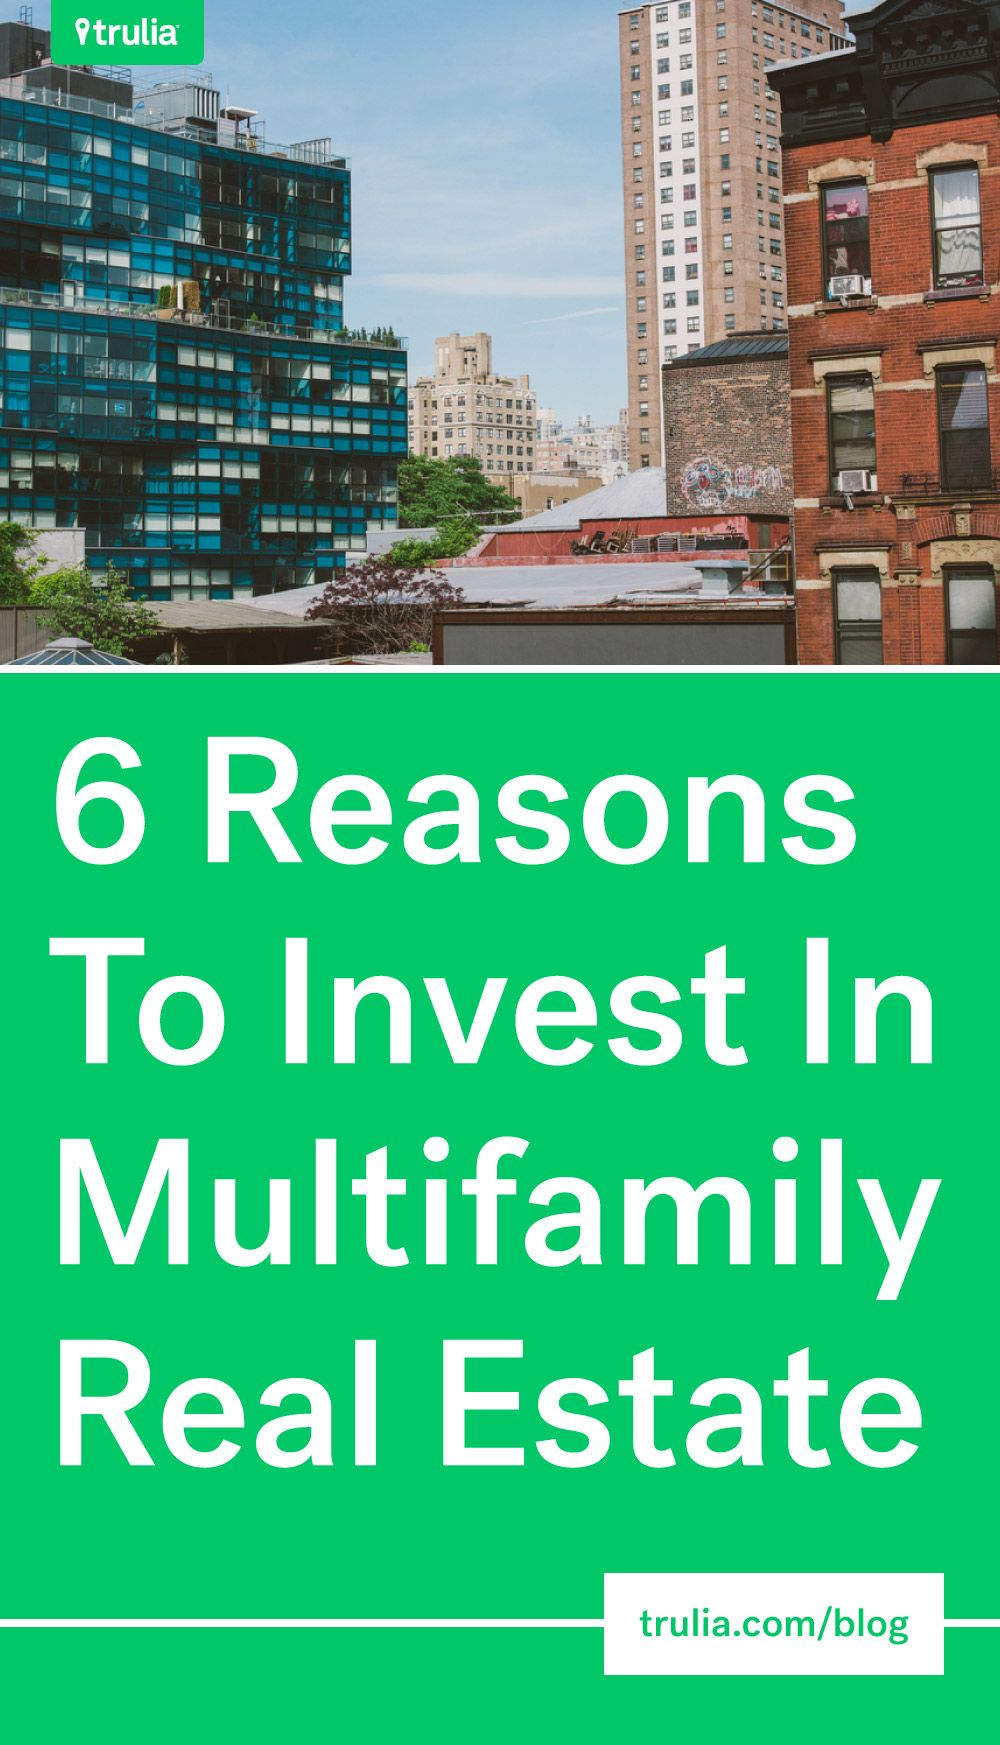 6 Reasons To Invest In Multifamily Real Estate